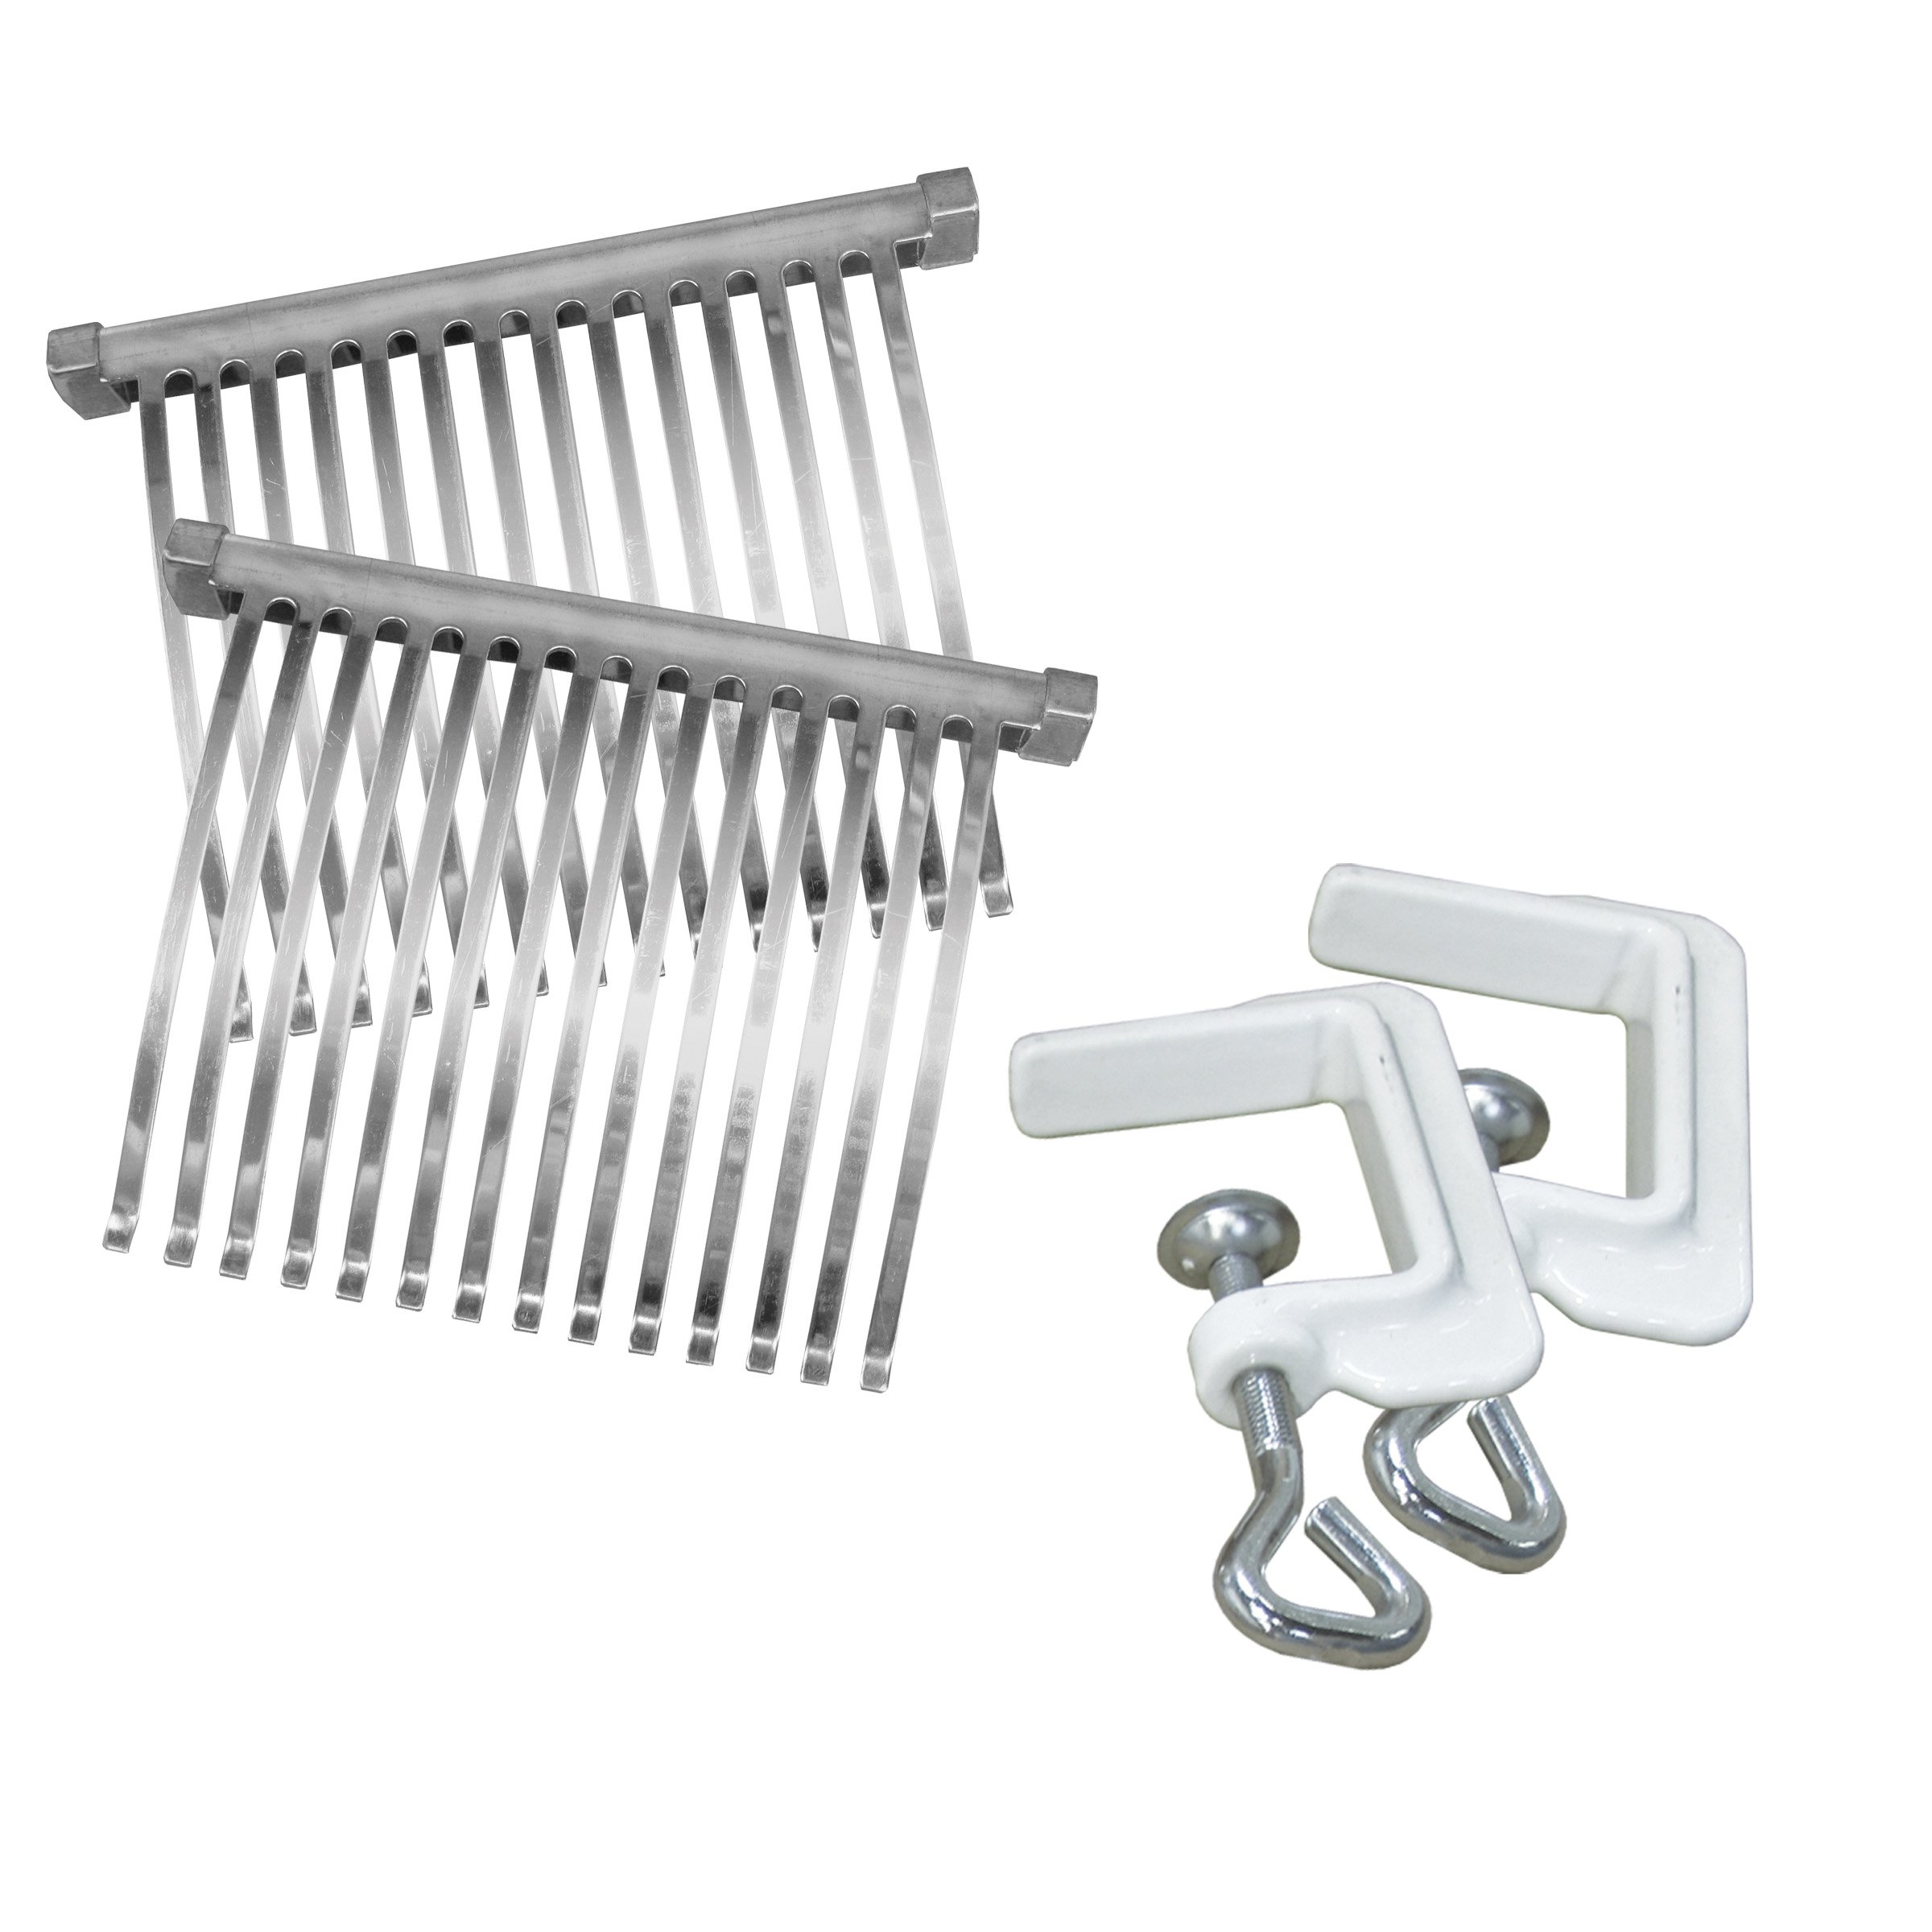 Weston Manual Heavy Duty Meat Cuber Tenderizer (07-3101-W-A), Sturdy Aluminum Construction, Stainless Steel Blades by Weston (Image #1)